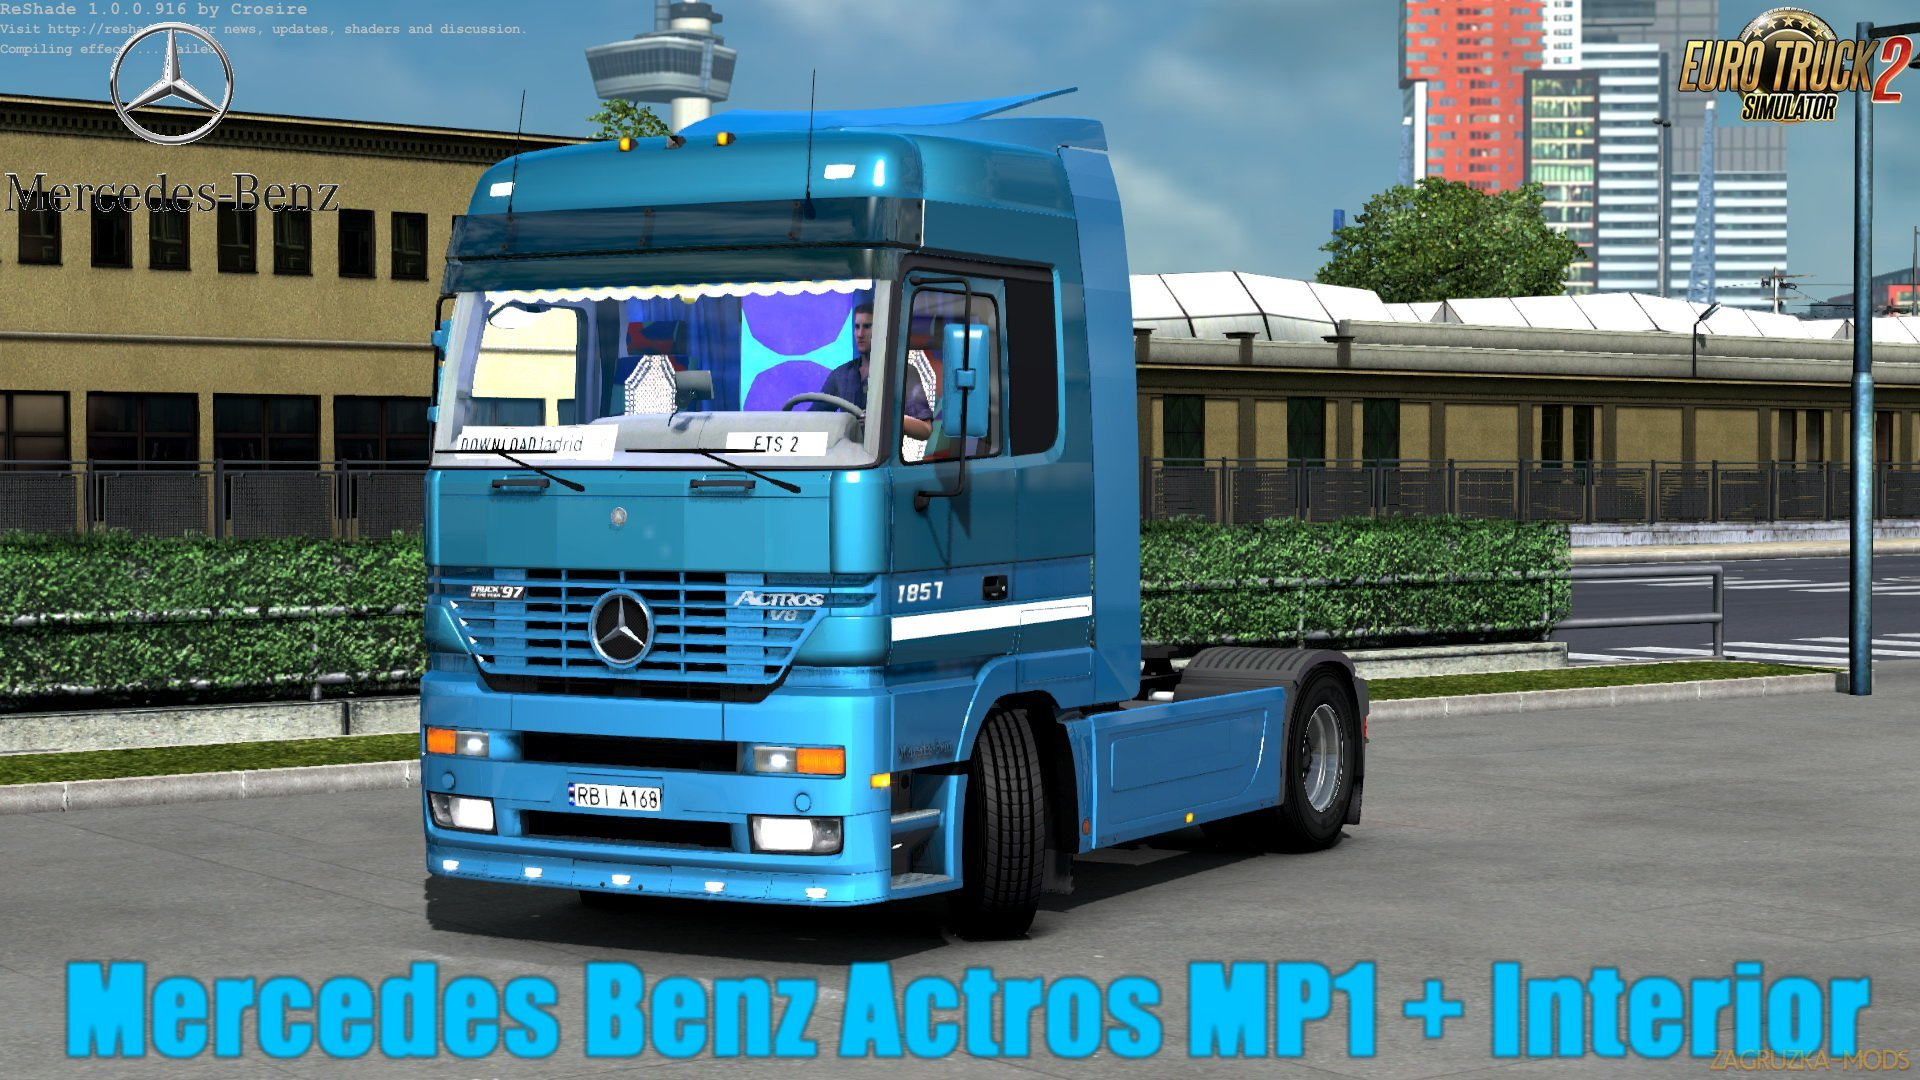 Mercedes Benz Actros MP1 v1.0 (Update by KrewlexDesings) (1.30.x) for ETS 2